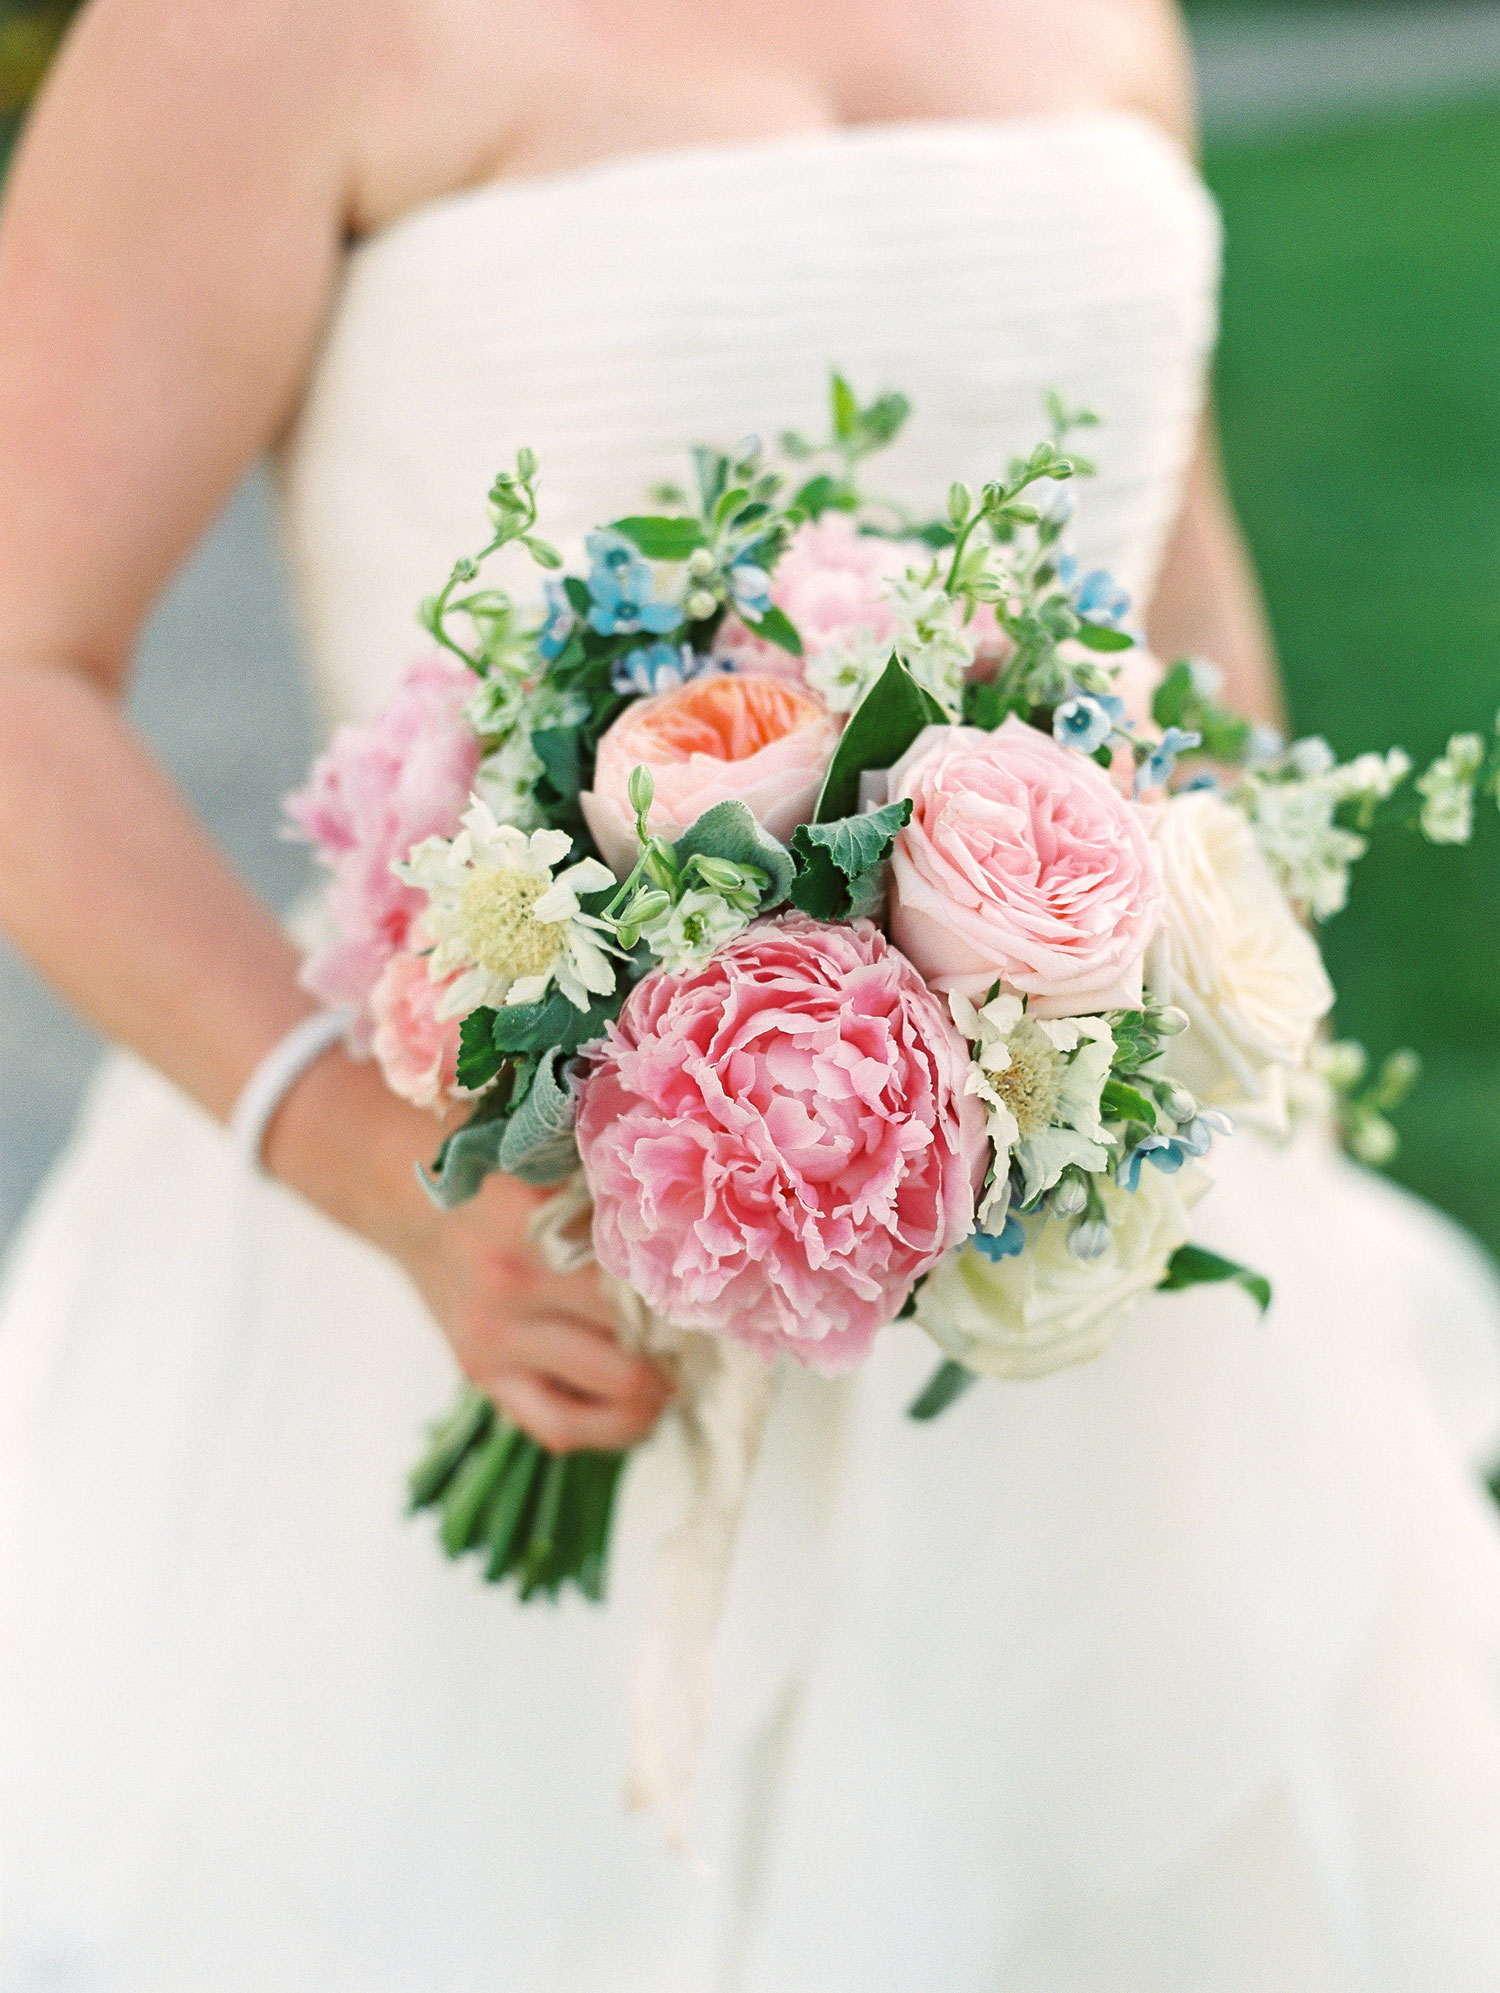 13 Pretty In Pink Ideas For Your Bridal Bouquet